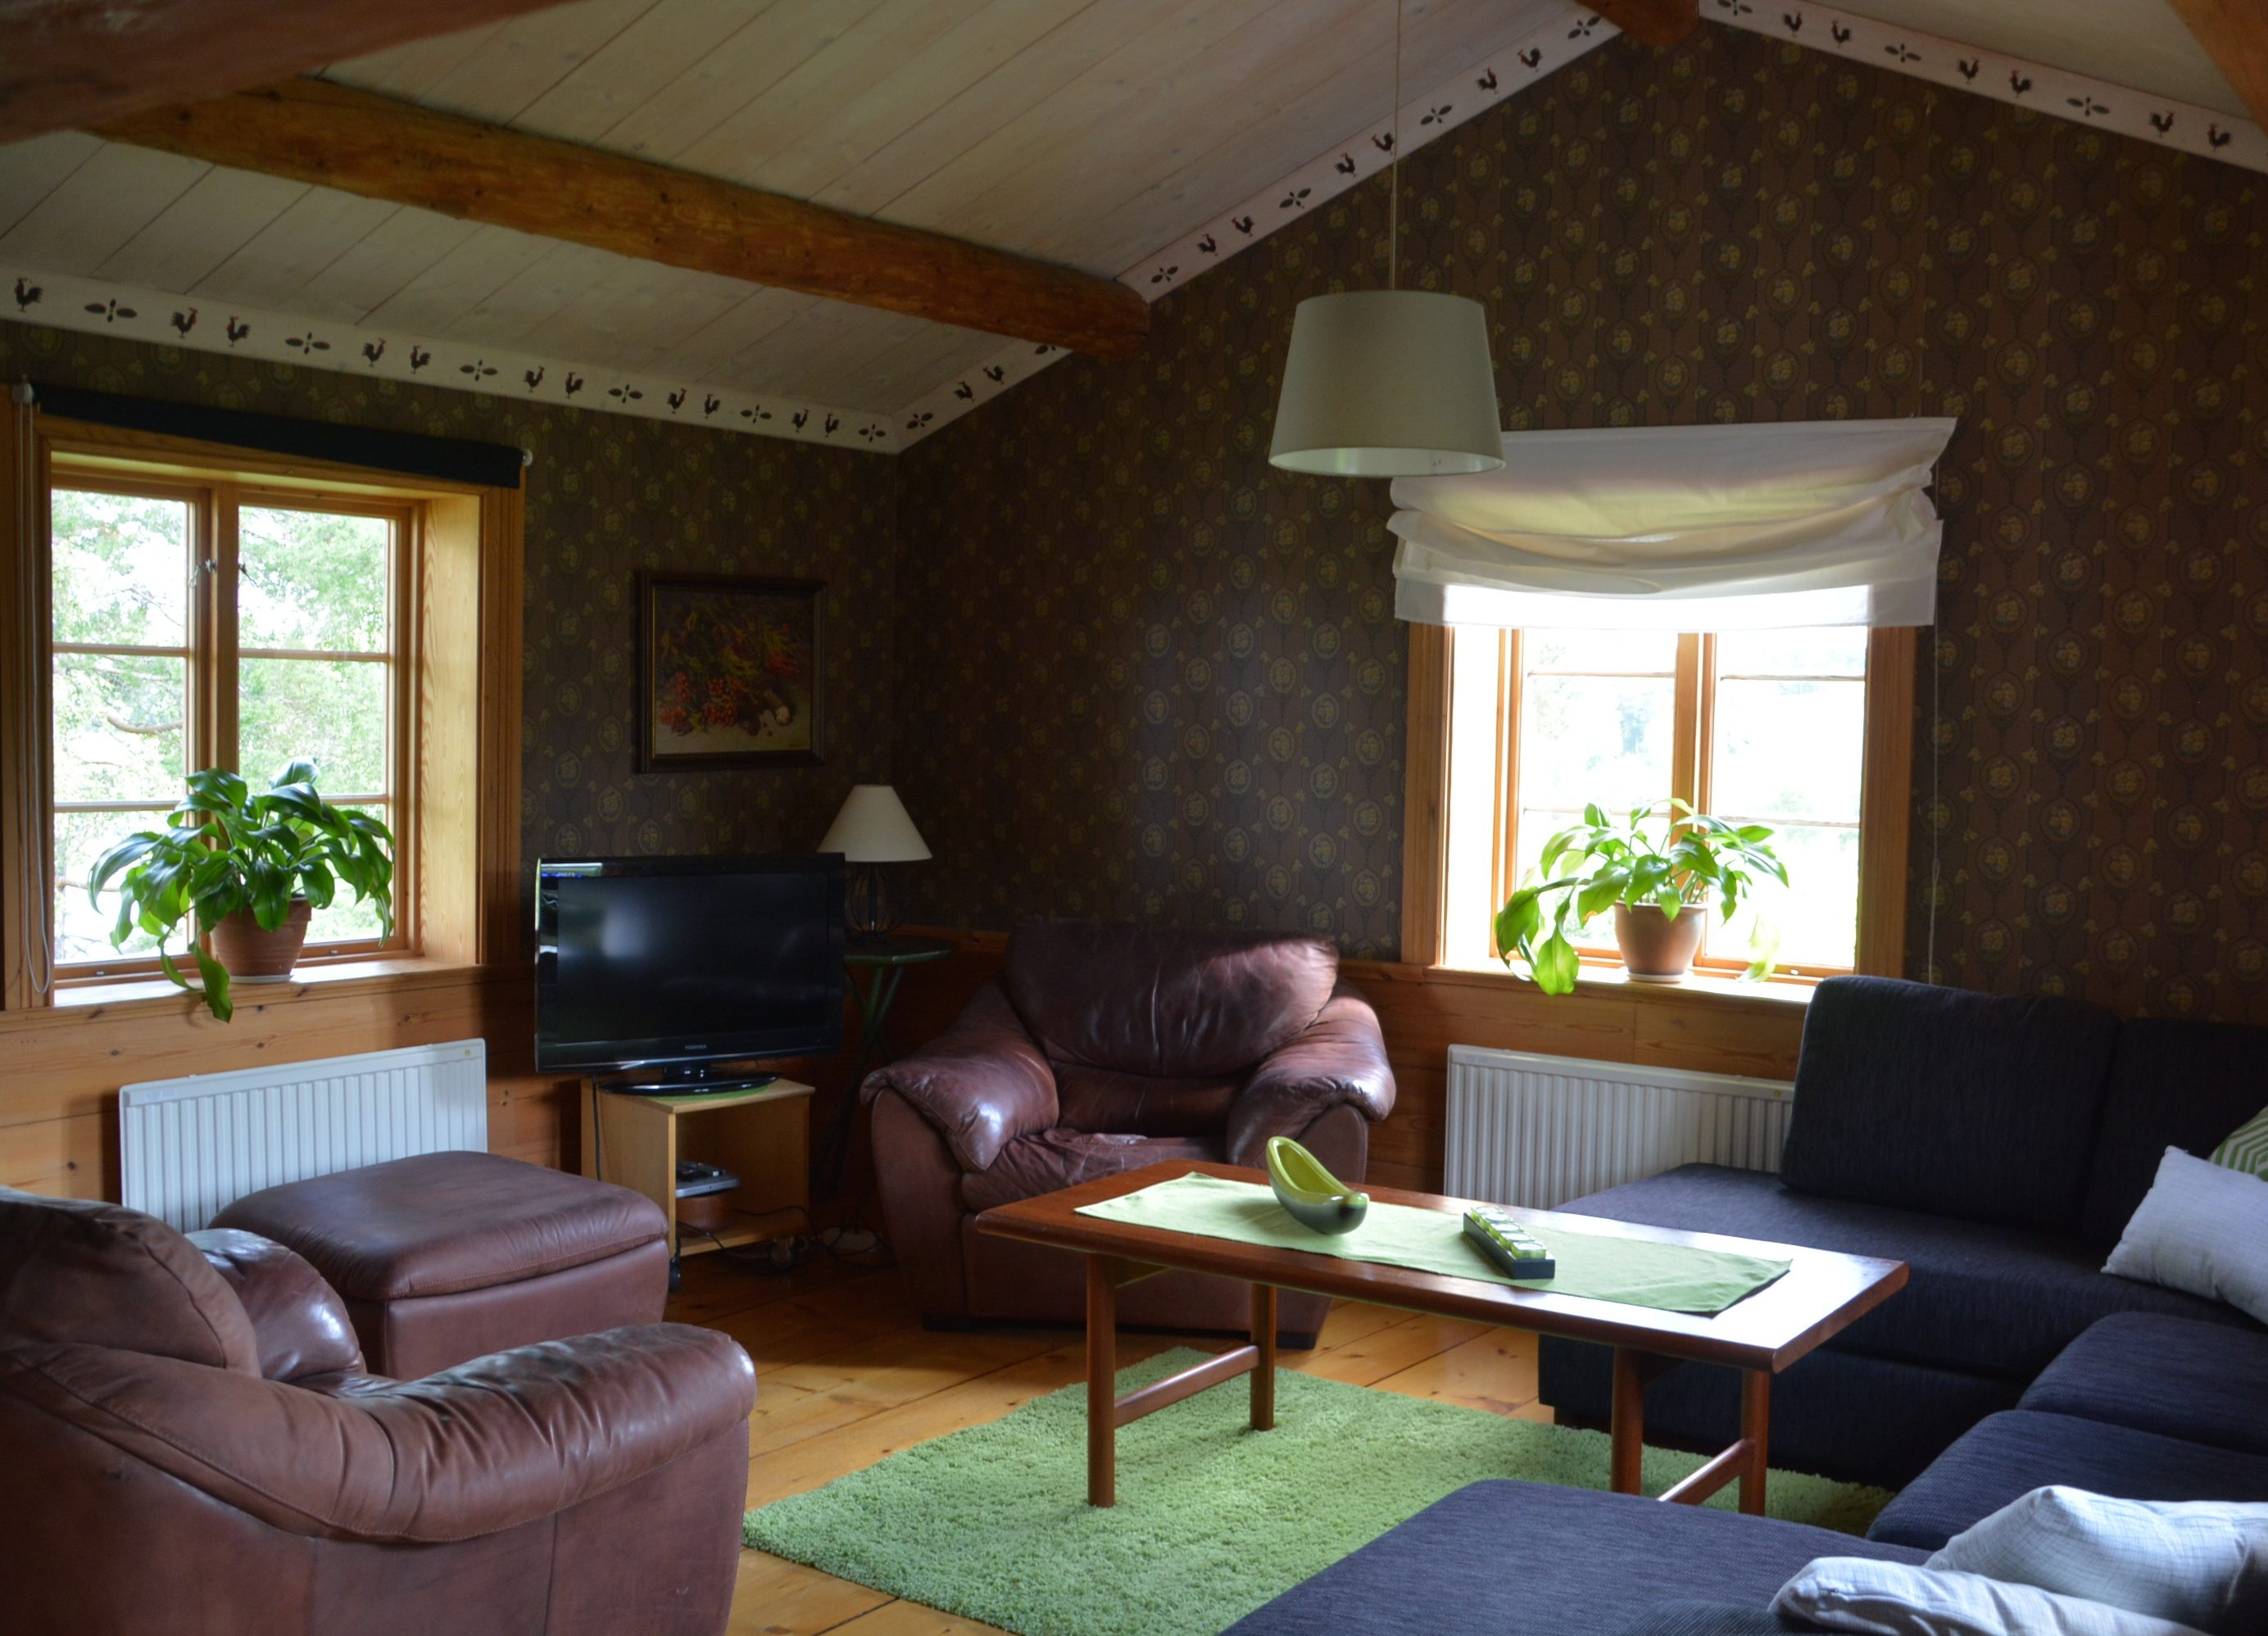 Living room in the lodge